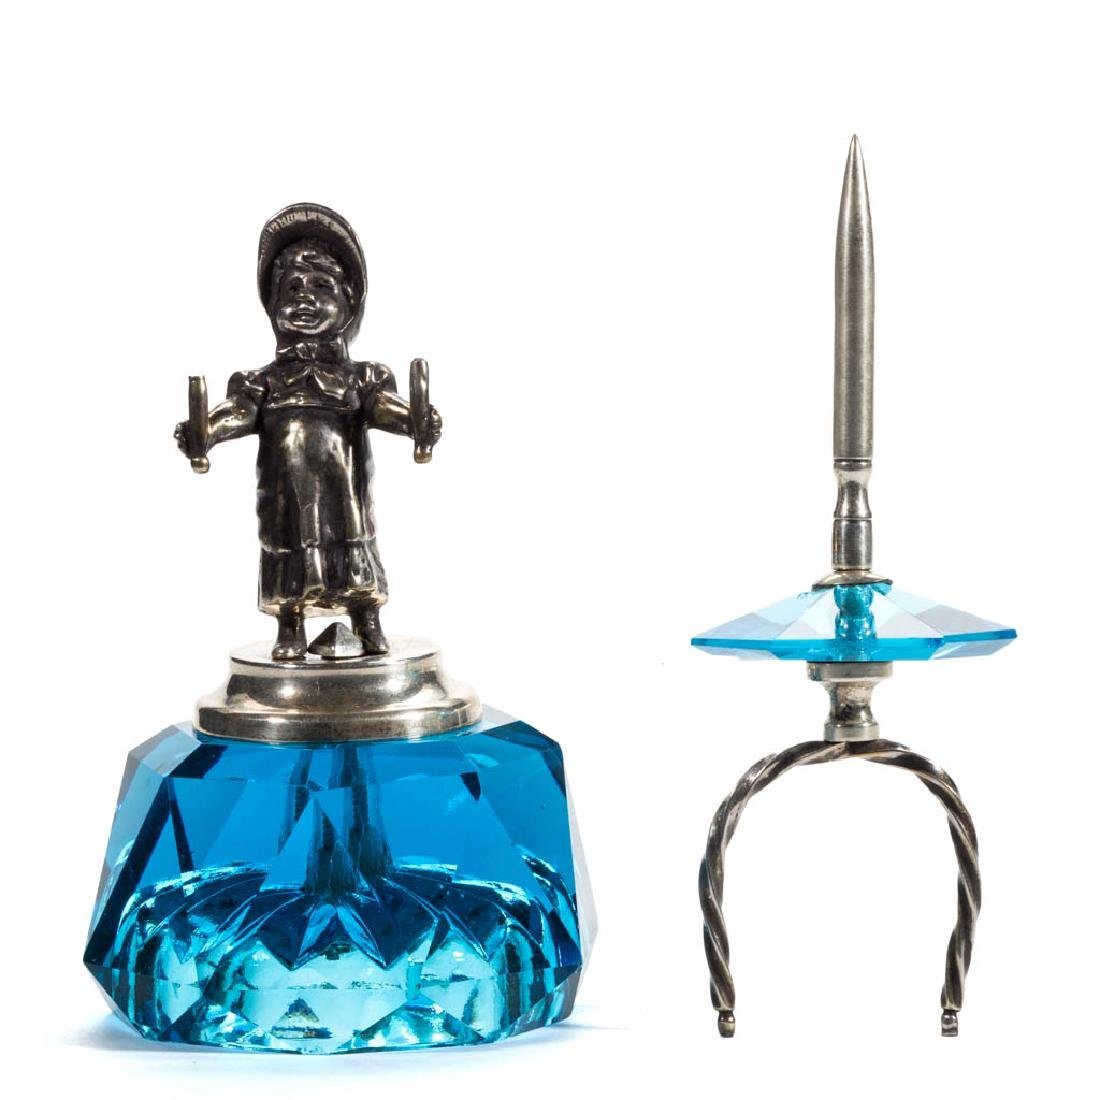 KATE GREENAWAY FIGURAL SILVER-PLATED AND GLASS SPINDLE